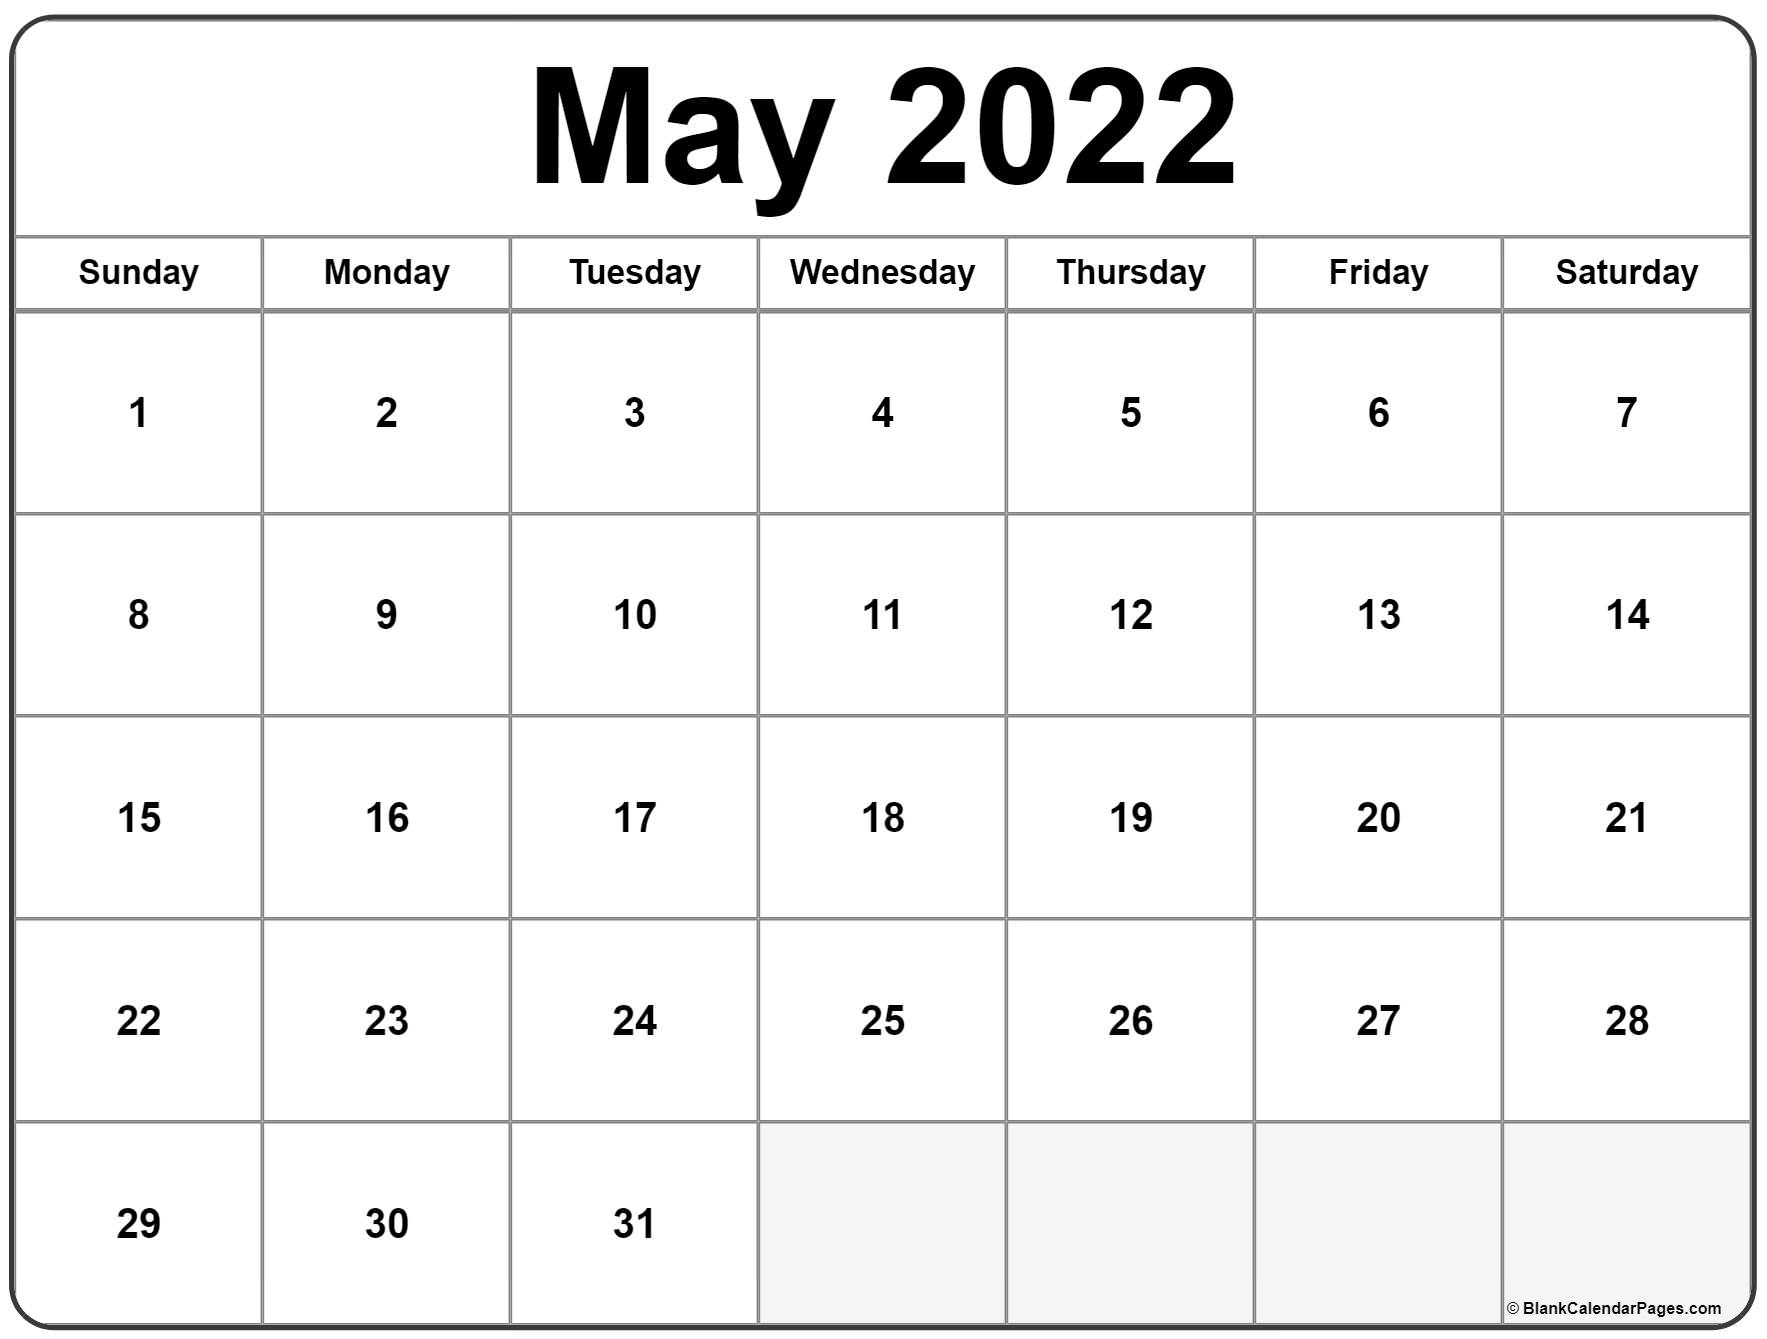 May 2022 calendar | free printable monthly calendars